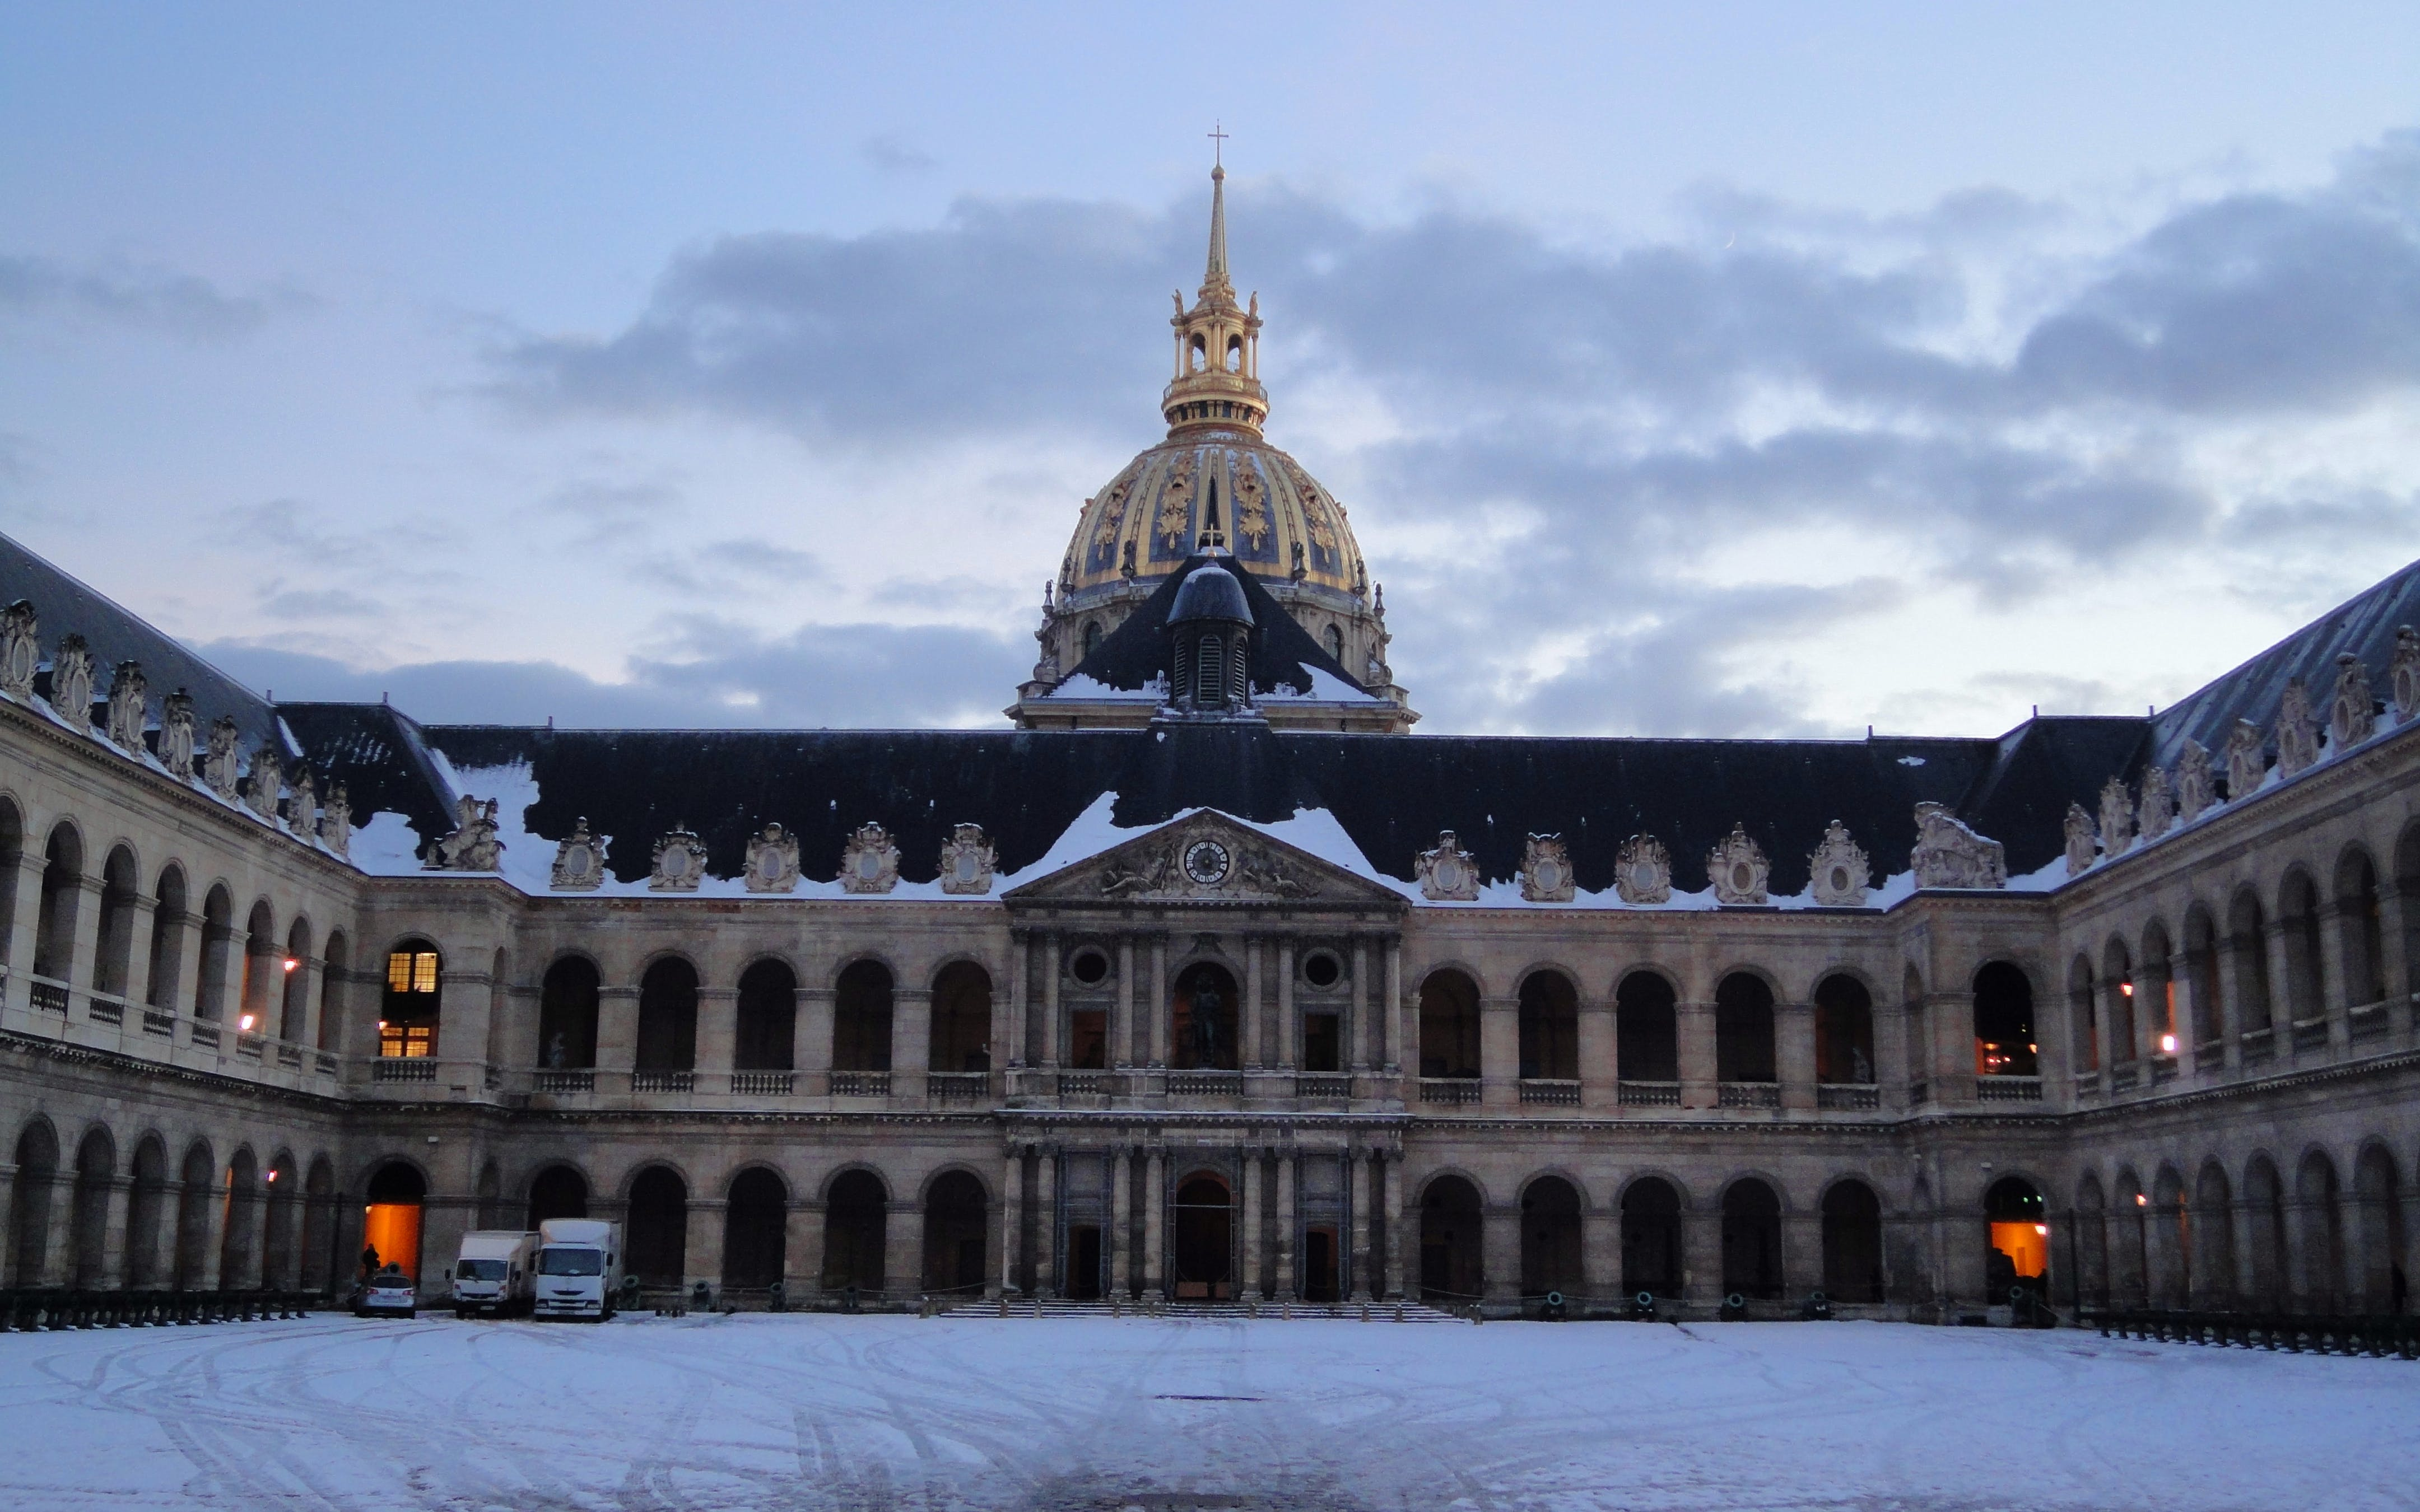 Les Invalides: Napoleon's Tomb and the Army museum Tour